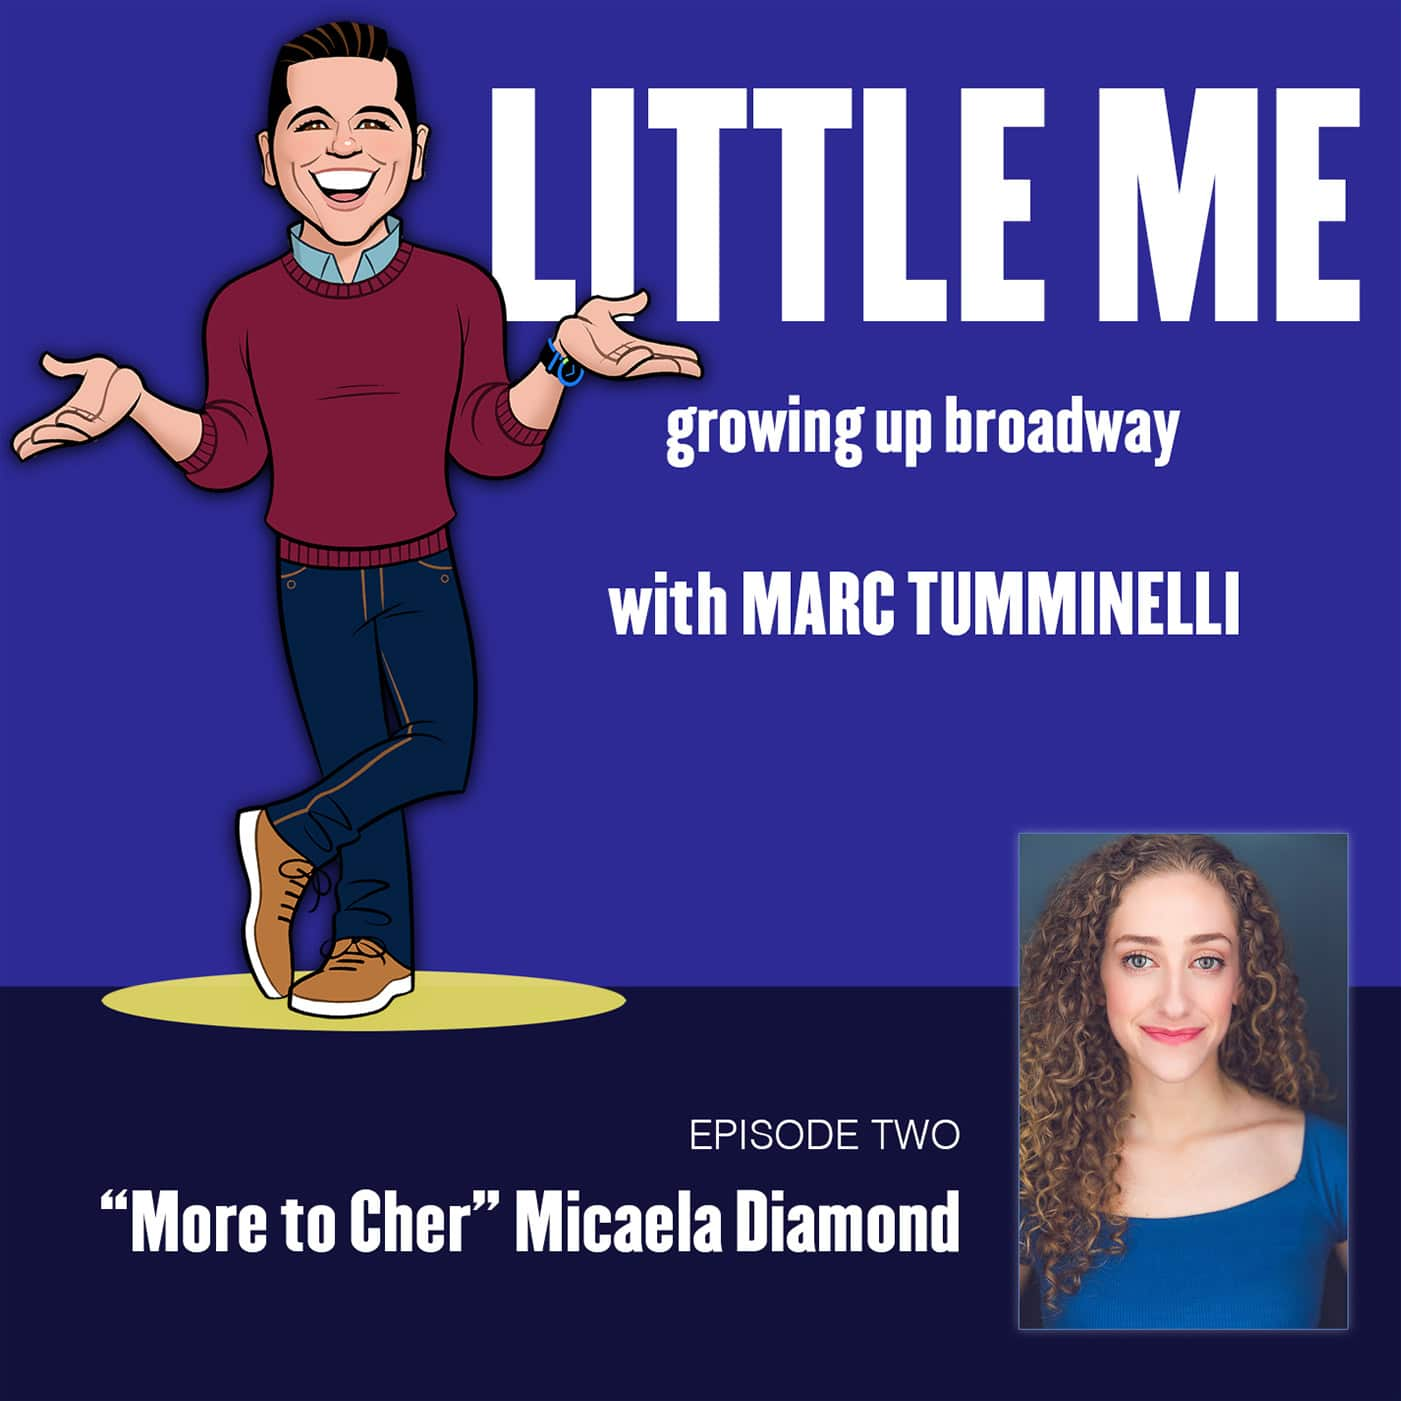 Little Me: Growing up Broadway - Ep2 - Michaela Diamond - More To Cher